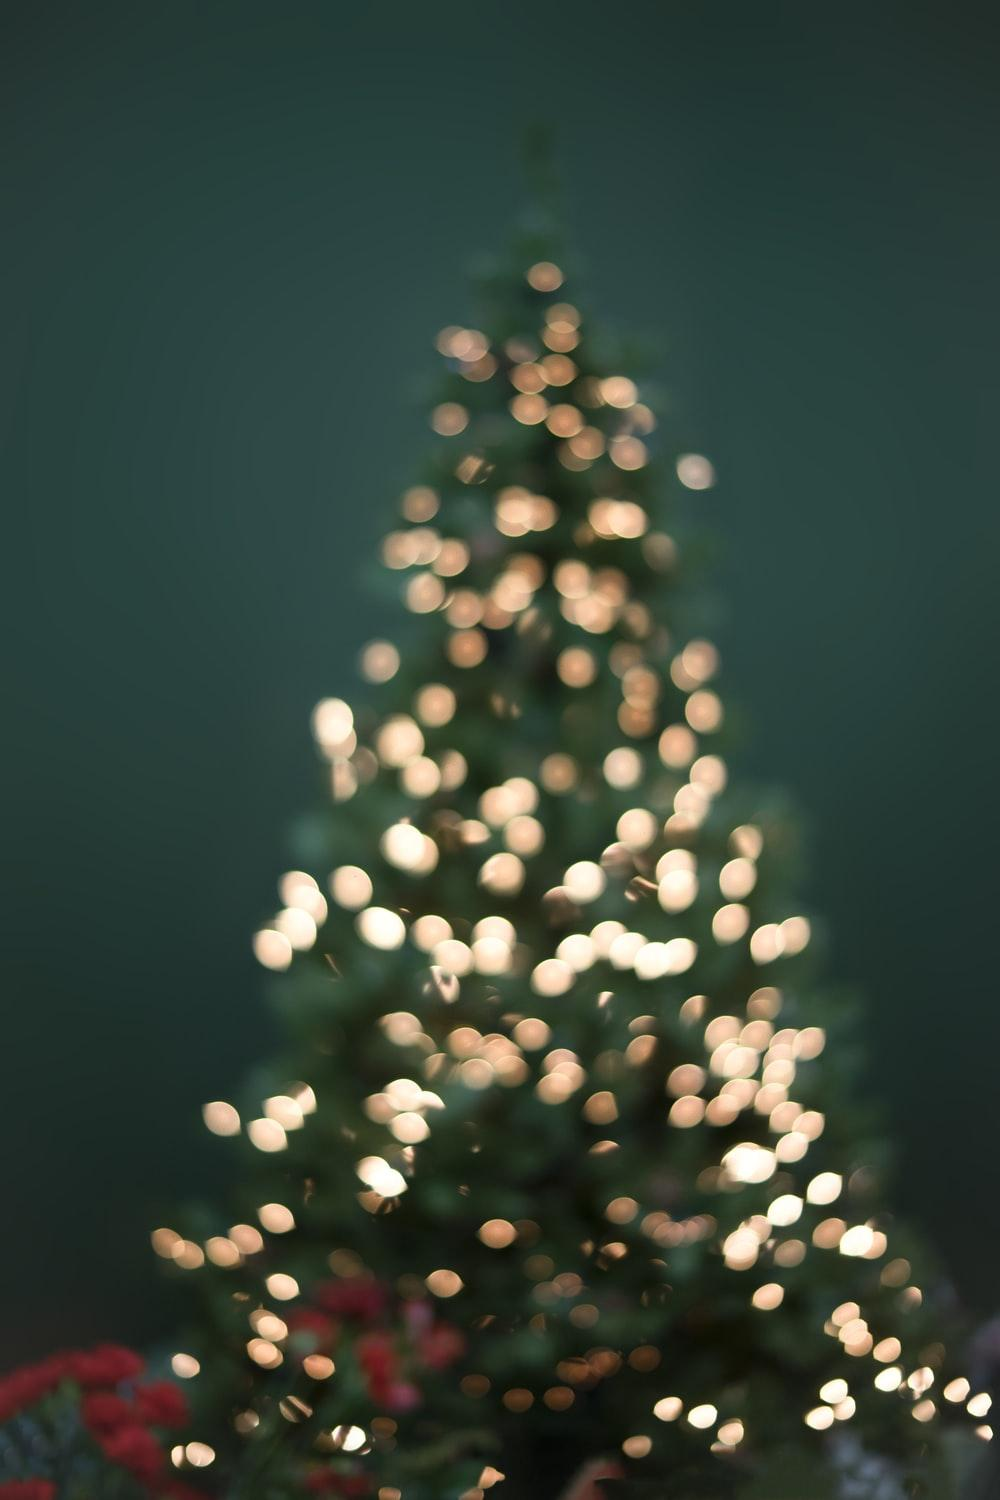 900+ Christmas Tree Image: Download HD Pictures & Photos on